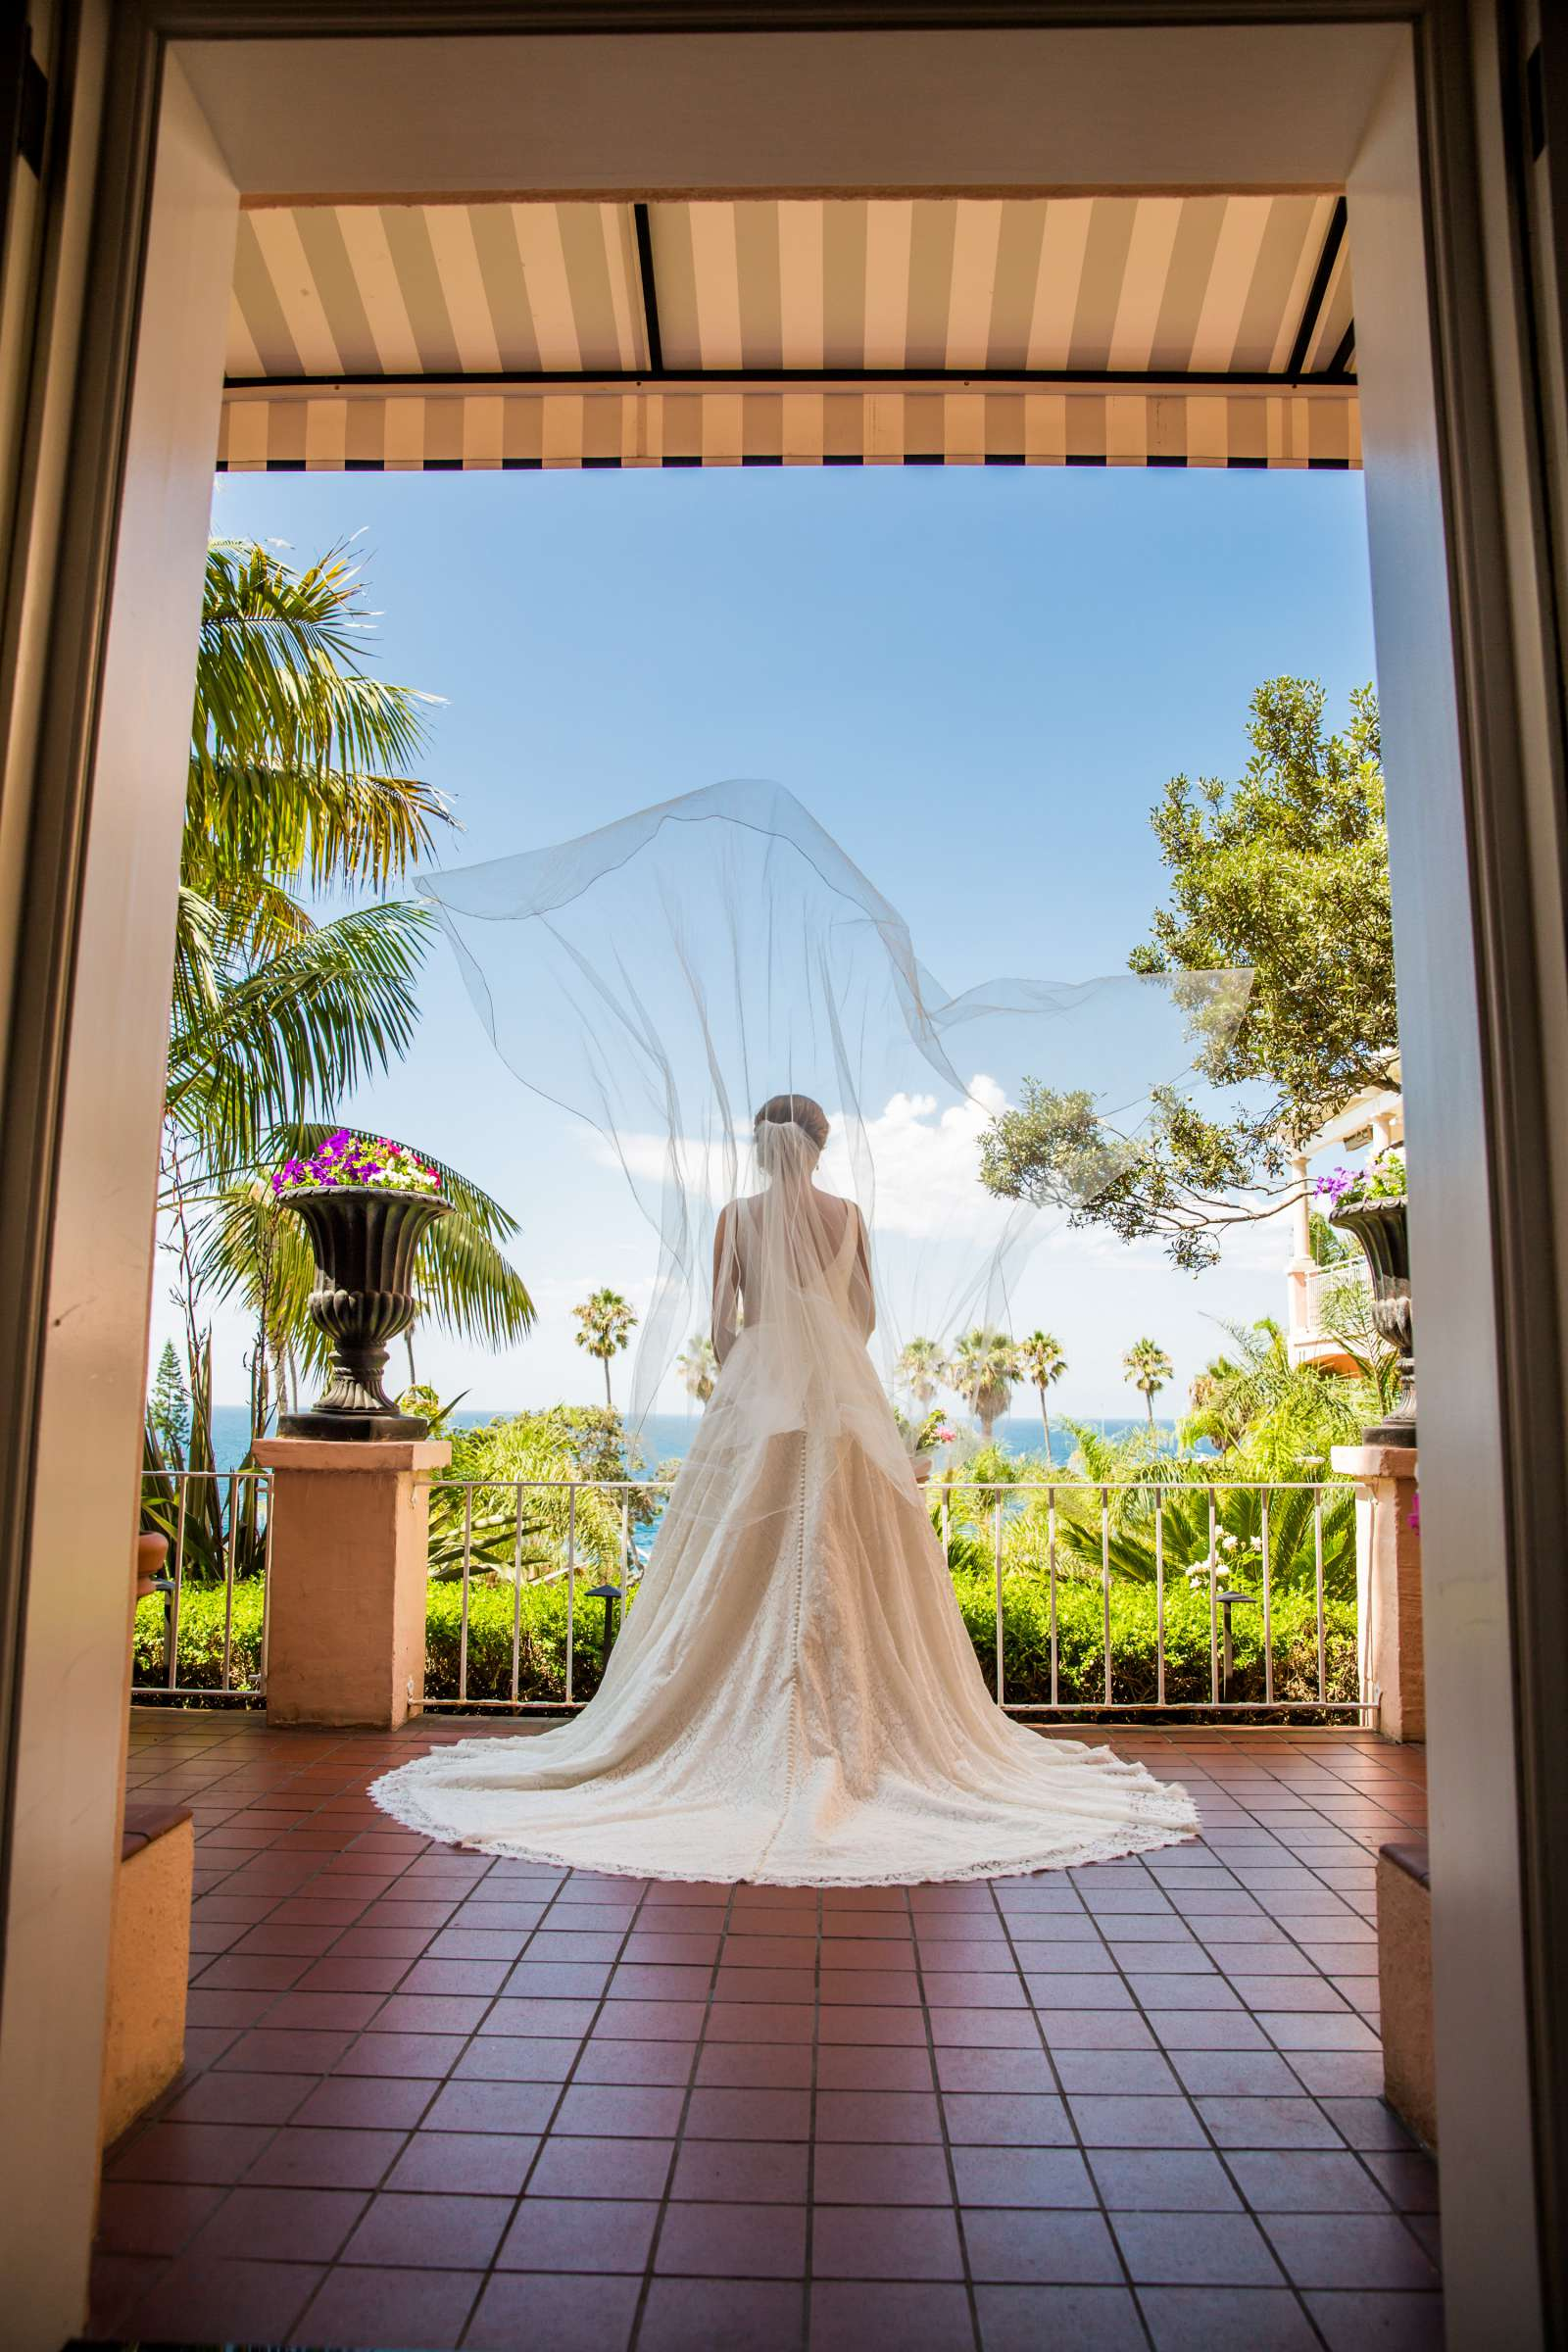 La Valencia Wedding coordinated by Francine Ribeau Events, Caitlin and Andrew Wedding Photo #9 by True Photography